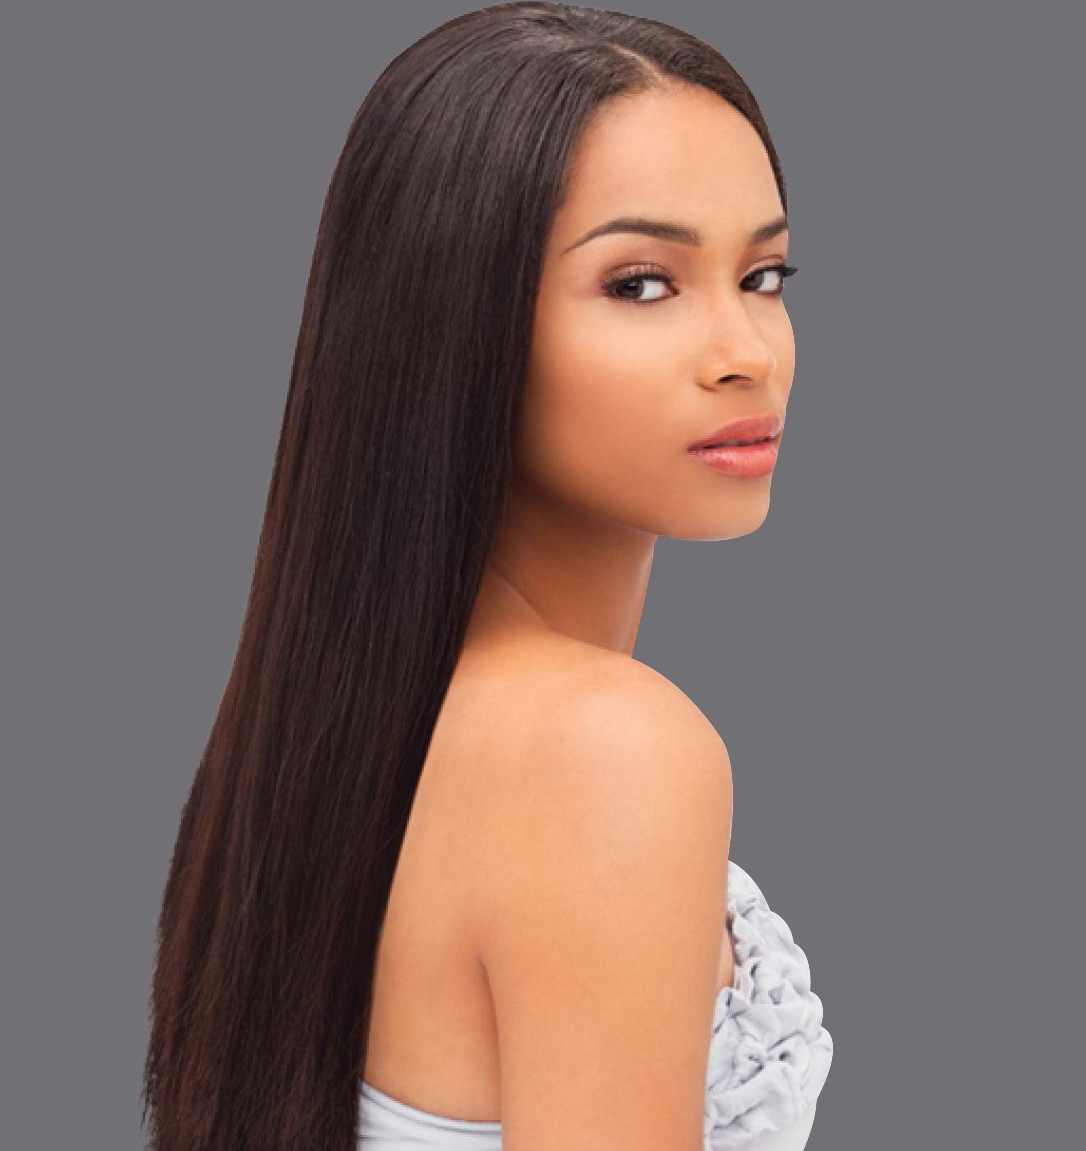 101 Hair Styles For Black Girls 2020 Amazing Hairstyles For ...